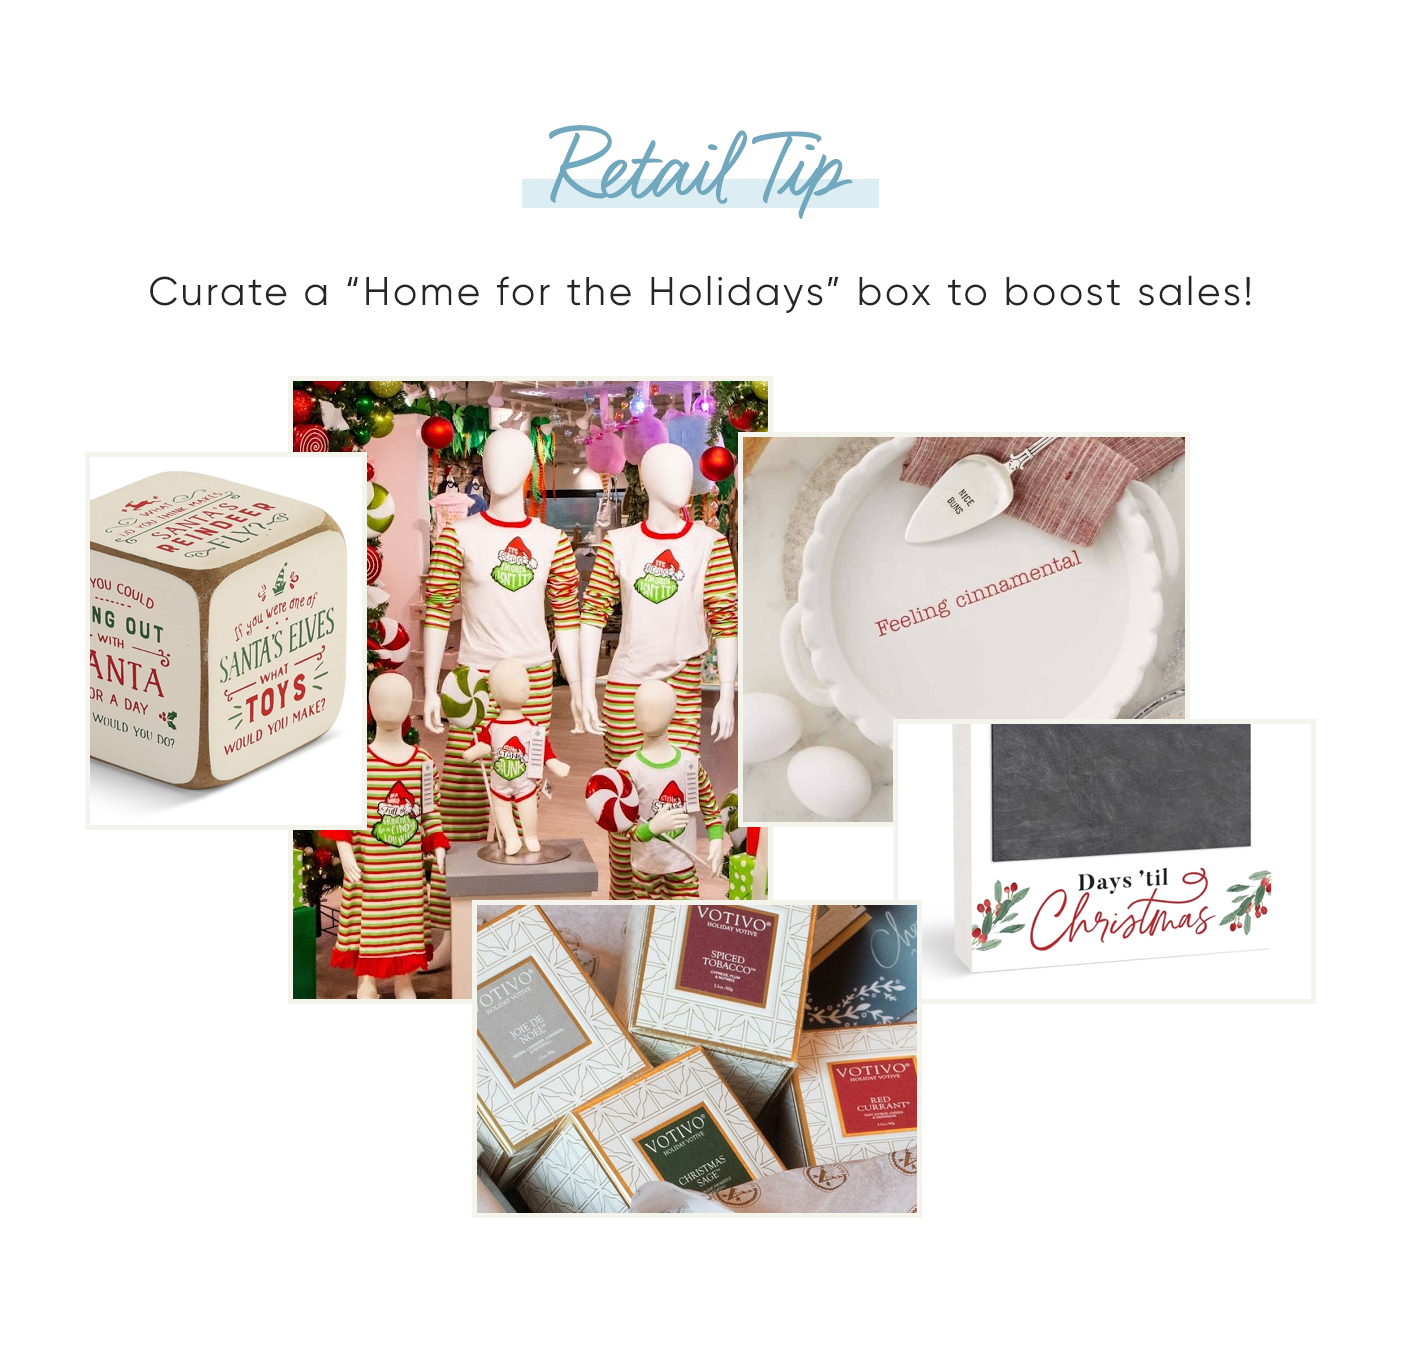 """OneCoast Retail Tip: Curate a """"Home for the Holidays"""" box for your customers to boost sales!"""